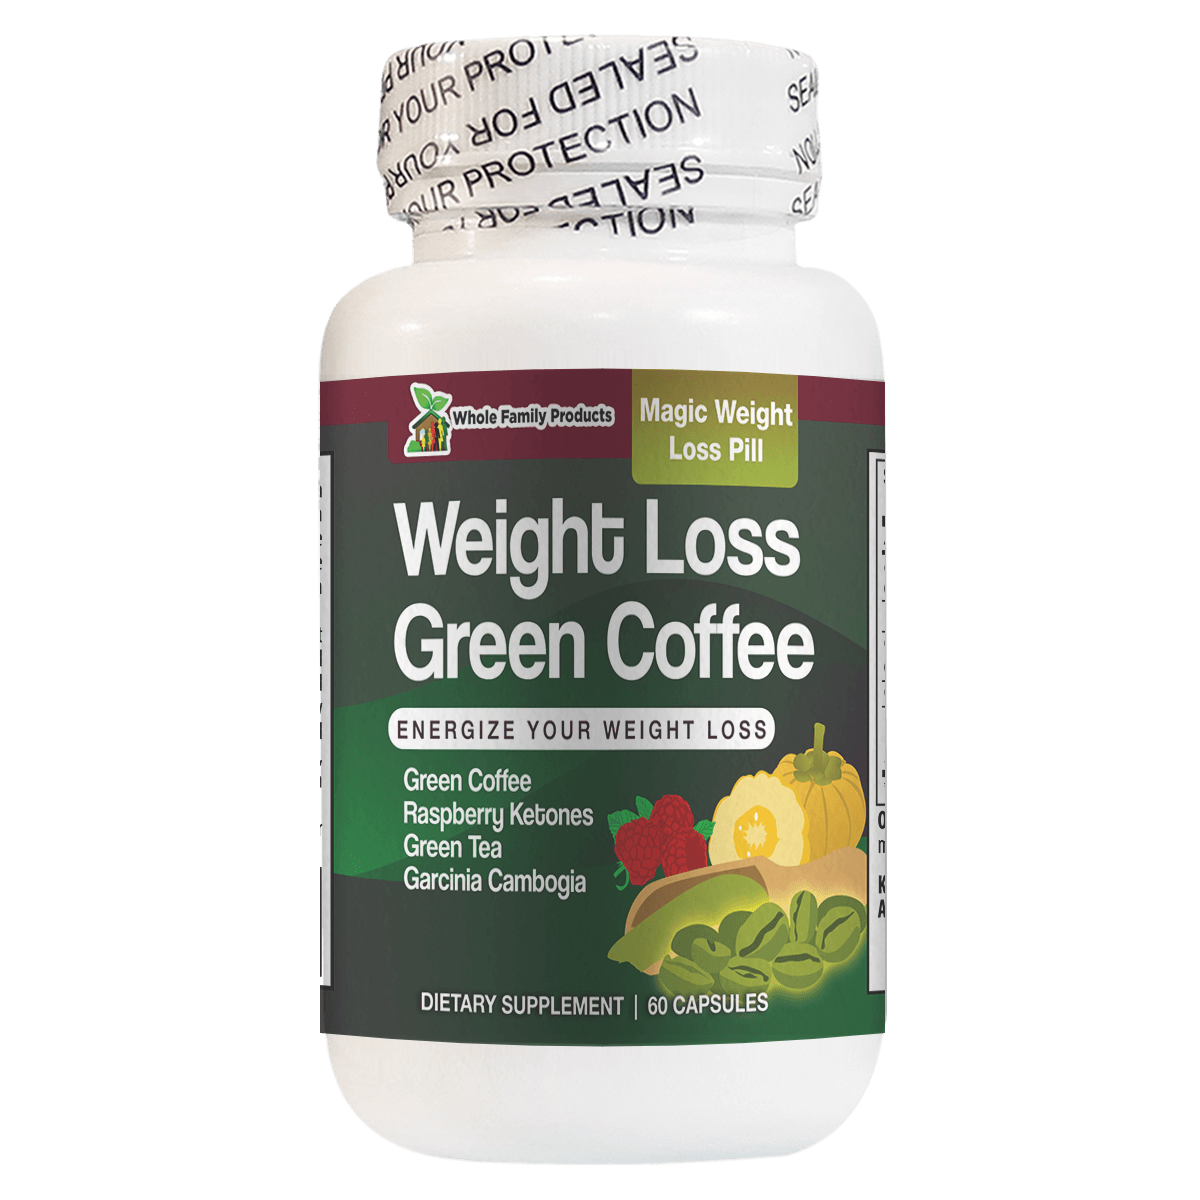 Weight Loss Green Coffee Helps Energize Your Weight Loss